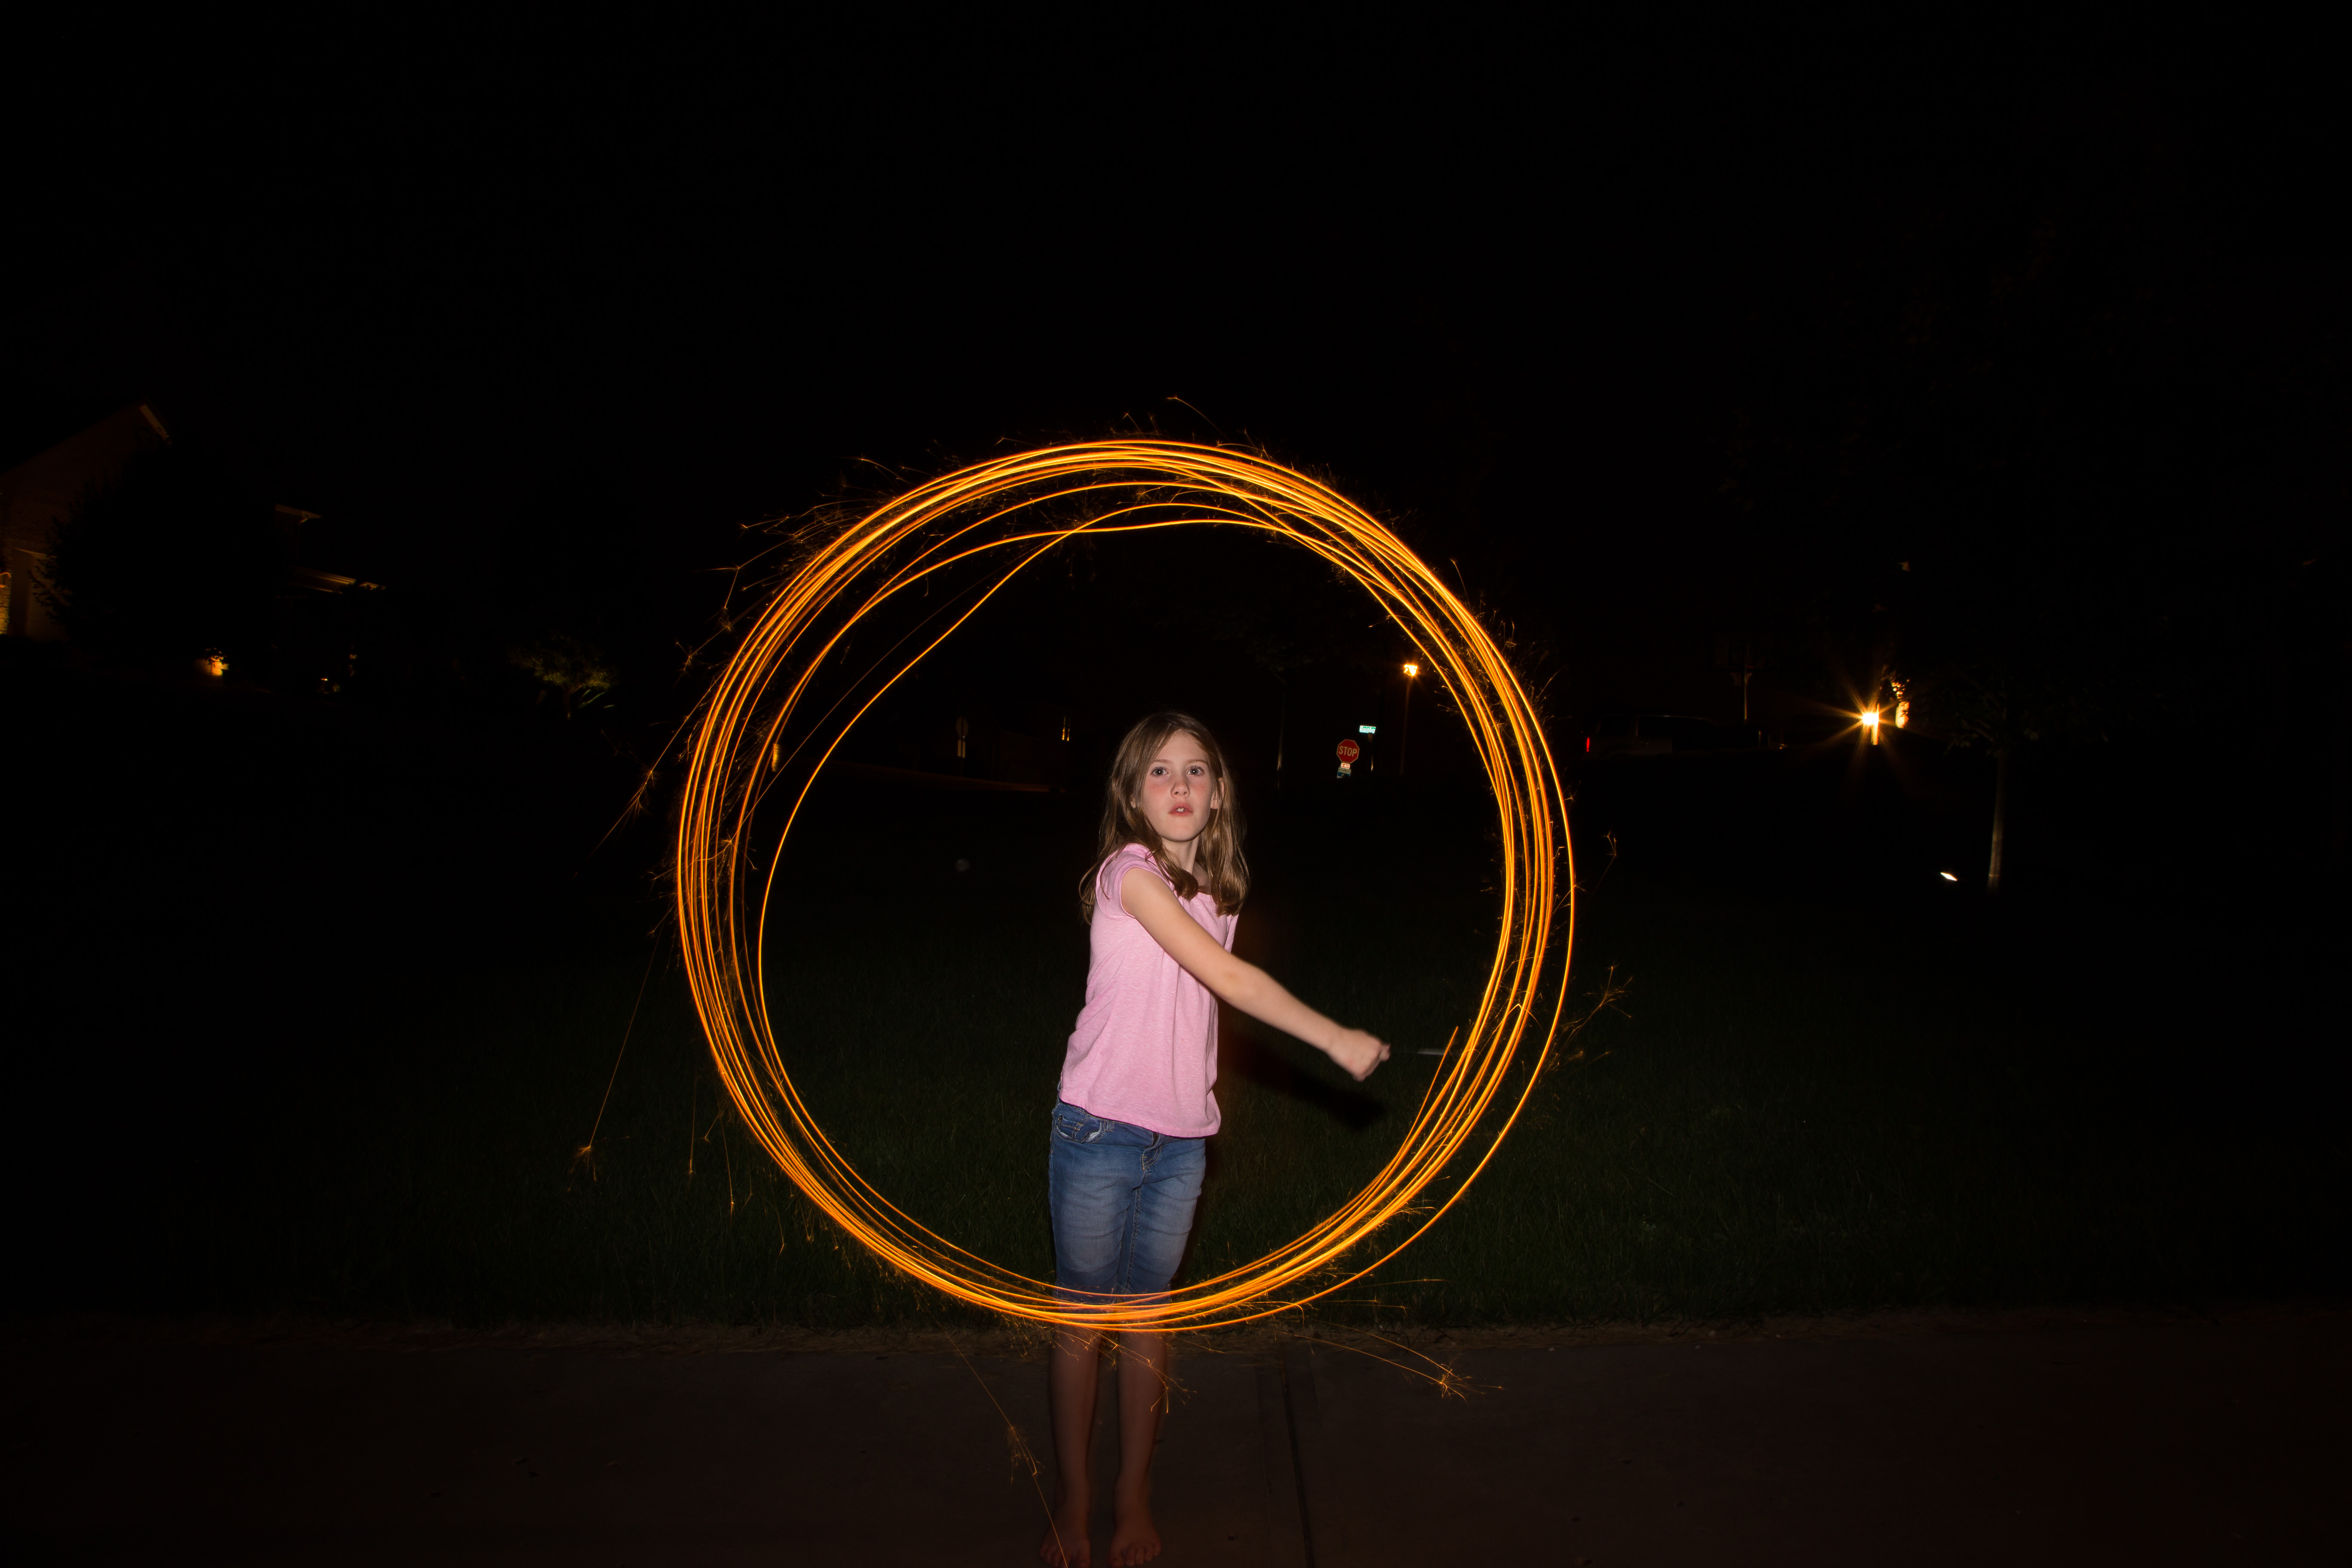 2015-07-04;Sparklers and pool 2 (7 of 12).JPG